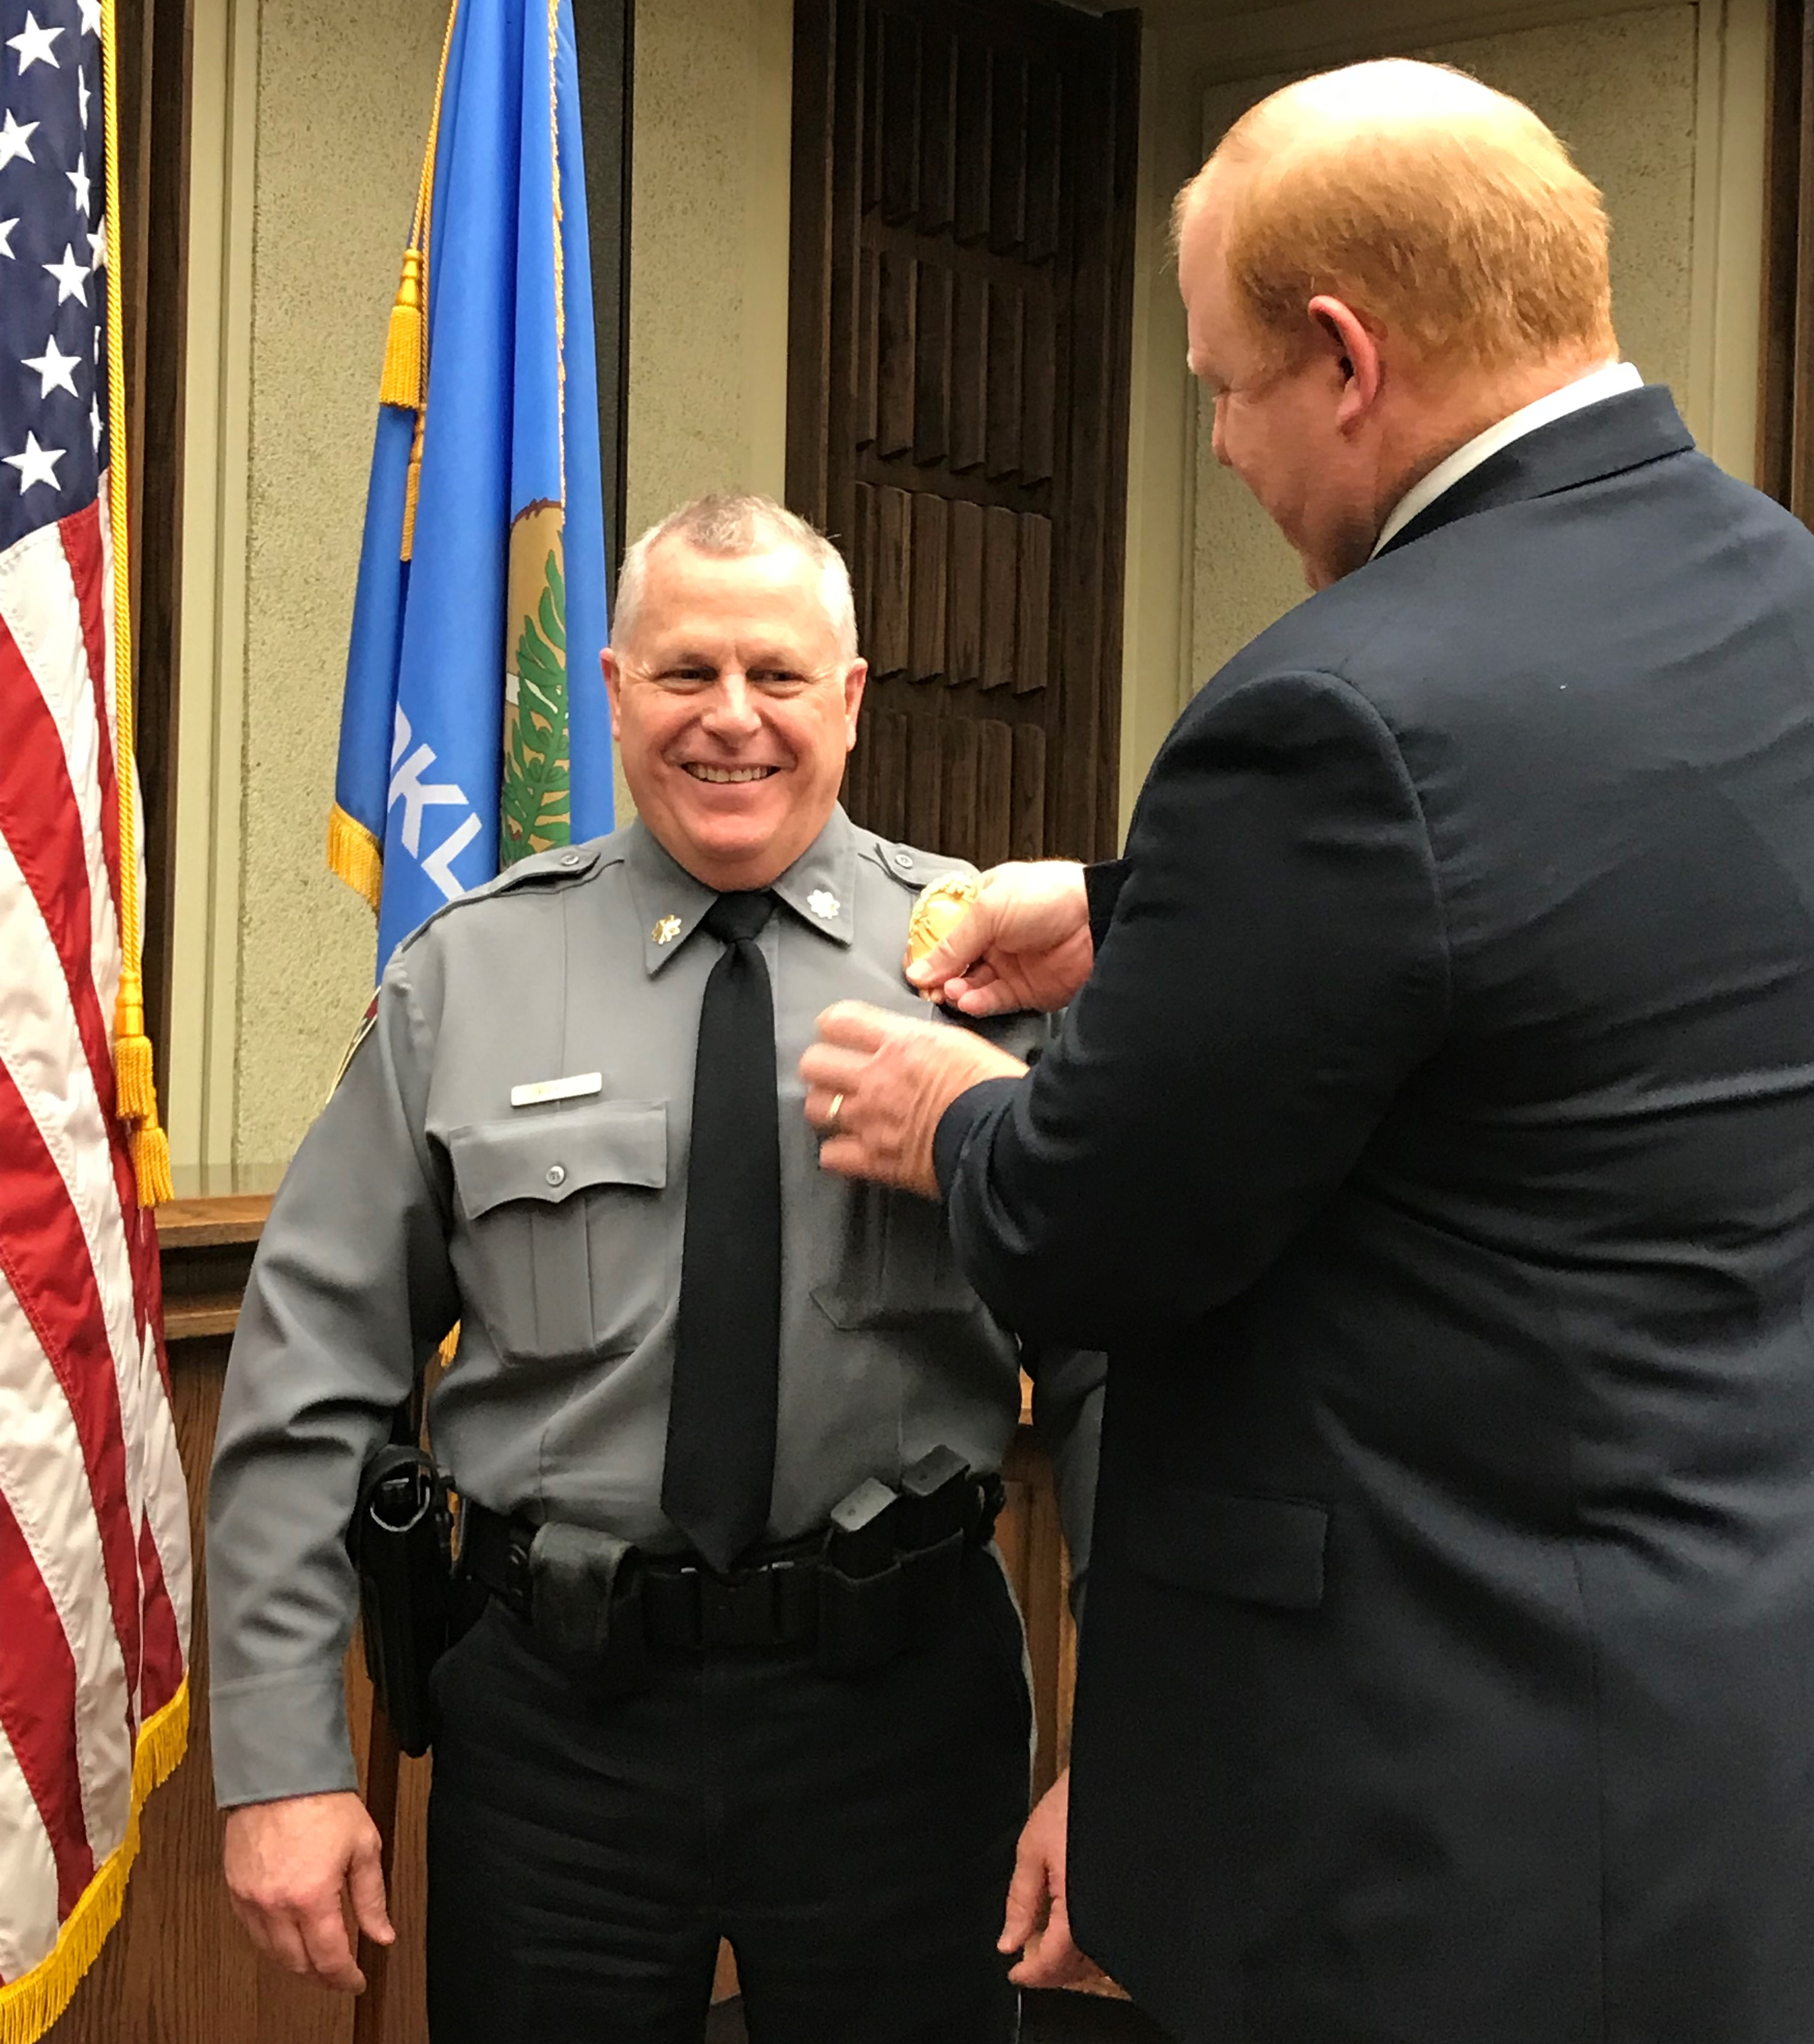 Richard Evans becomes Deputy Chief of Police